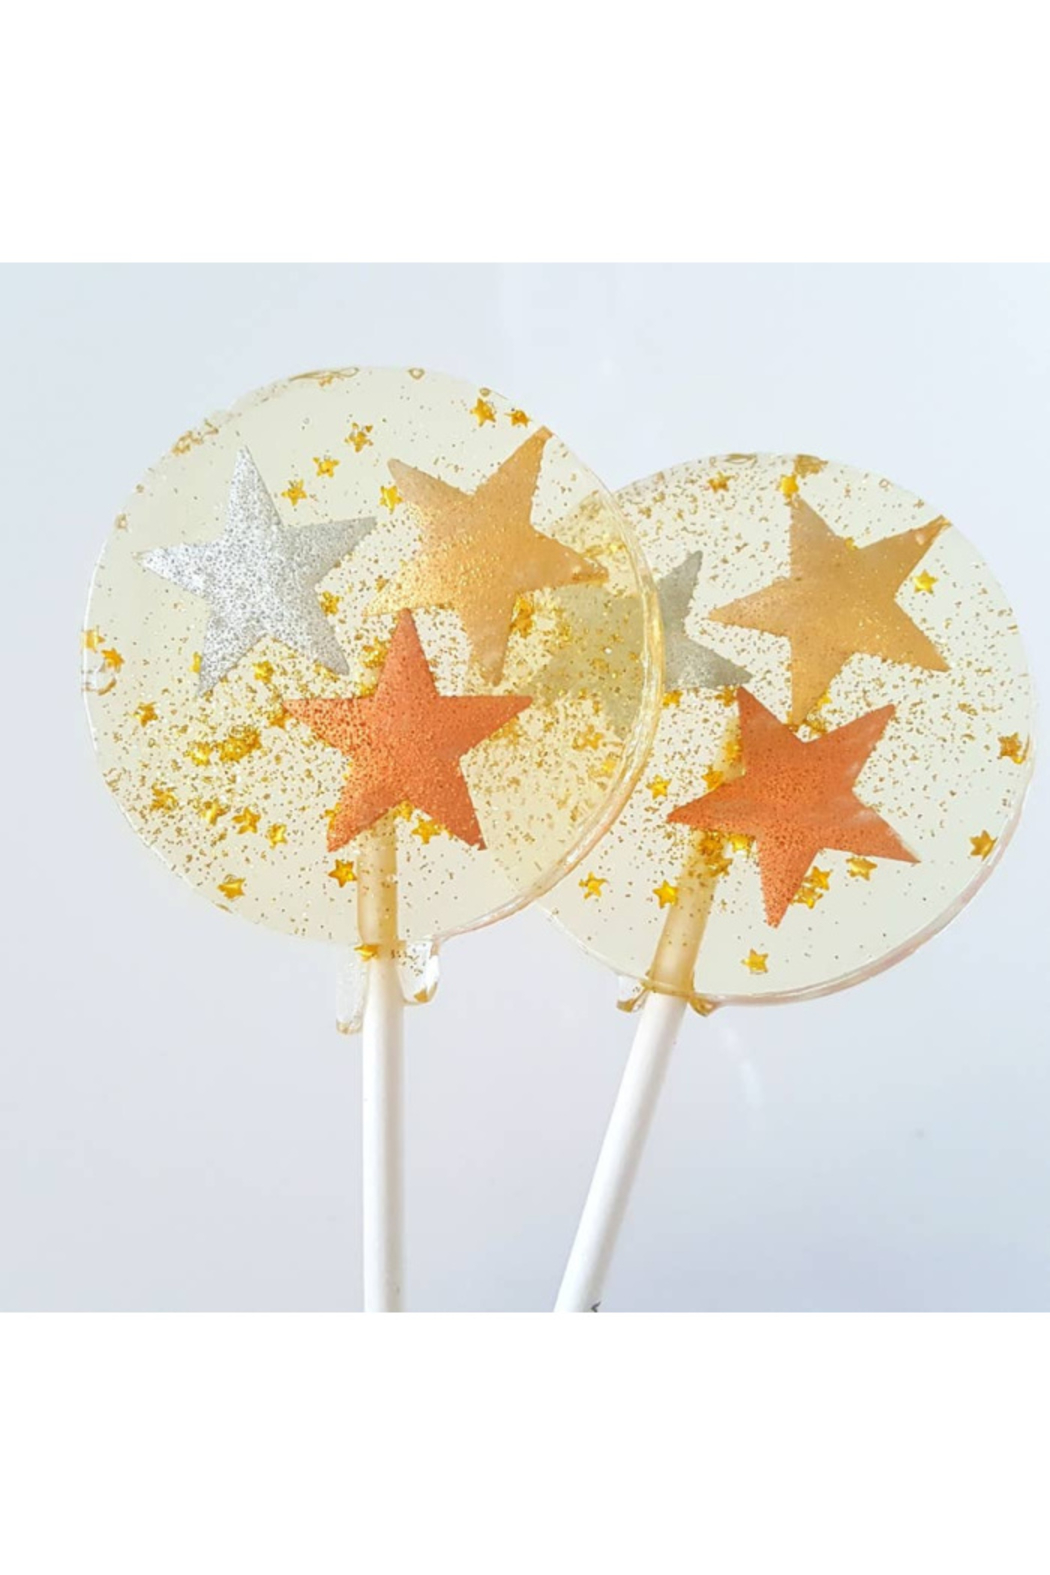 The Birds Nest METALLIC STARS LOLLIPOPS - Front Cropped Image